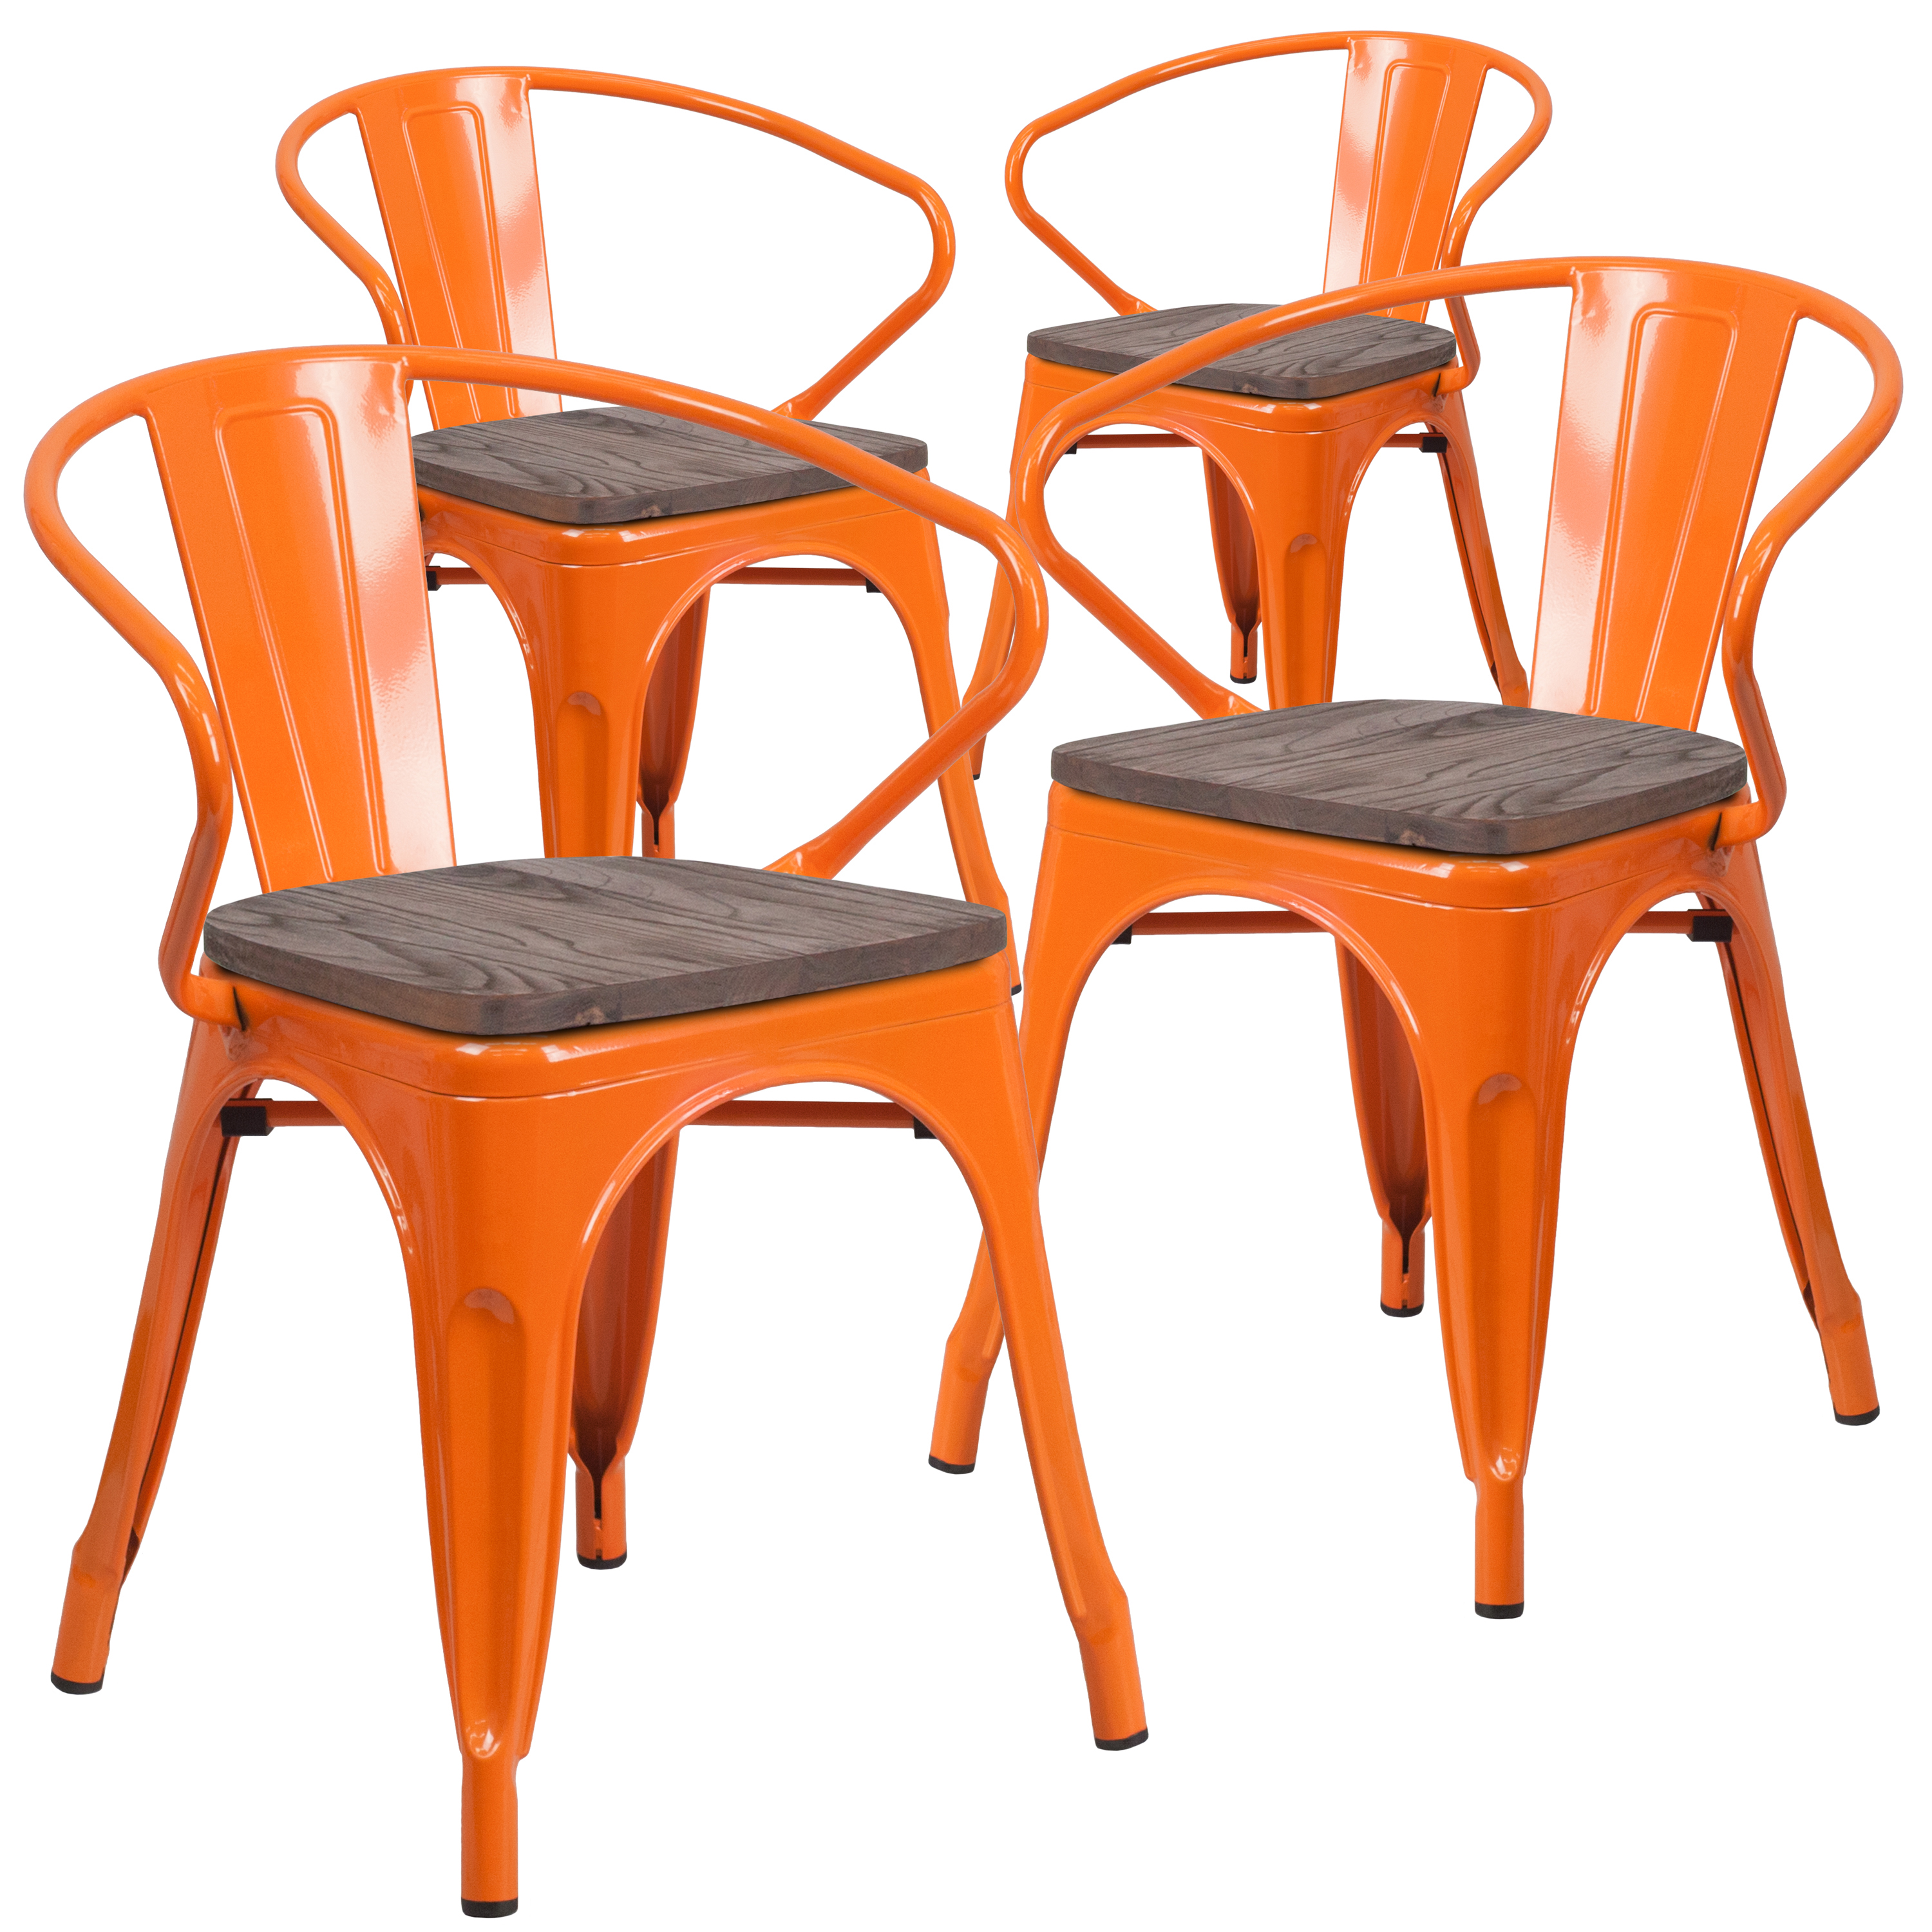 Flash Furniture 4 Pk. White Metal Chair with Wood Seat and Arms